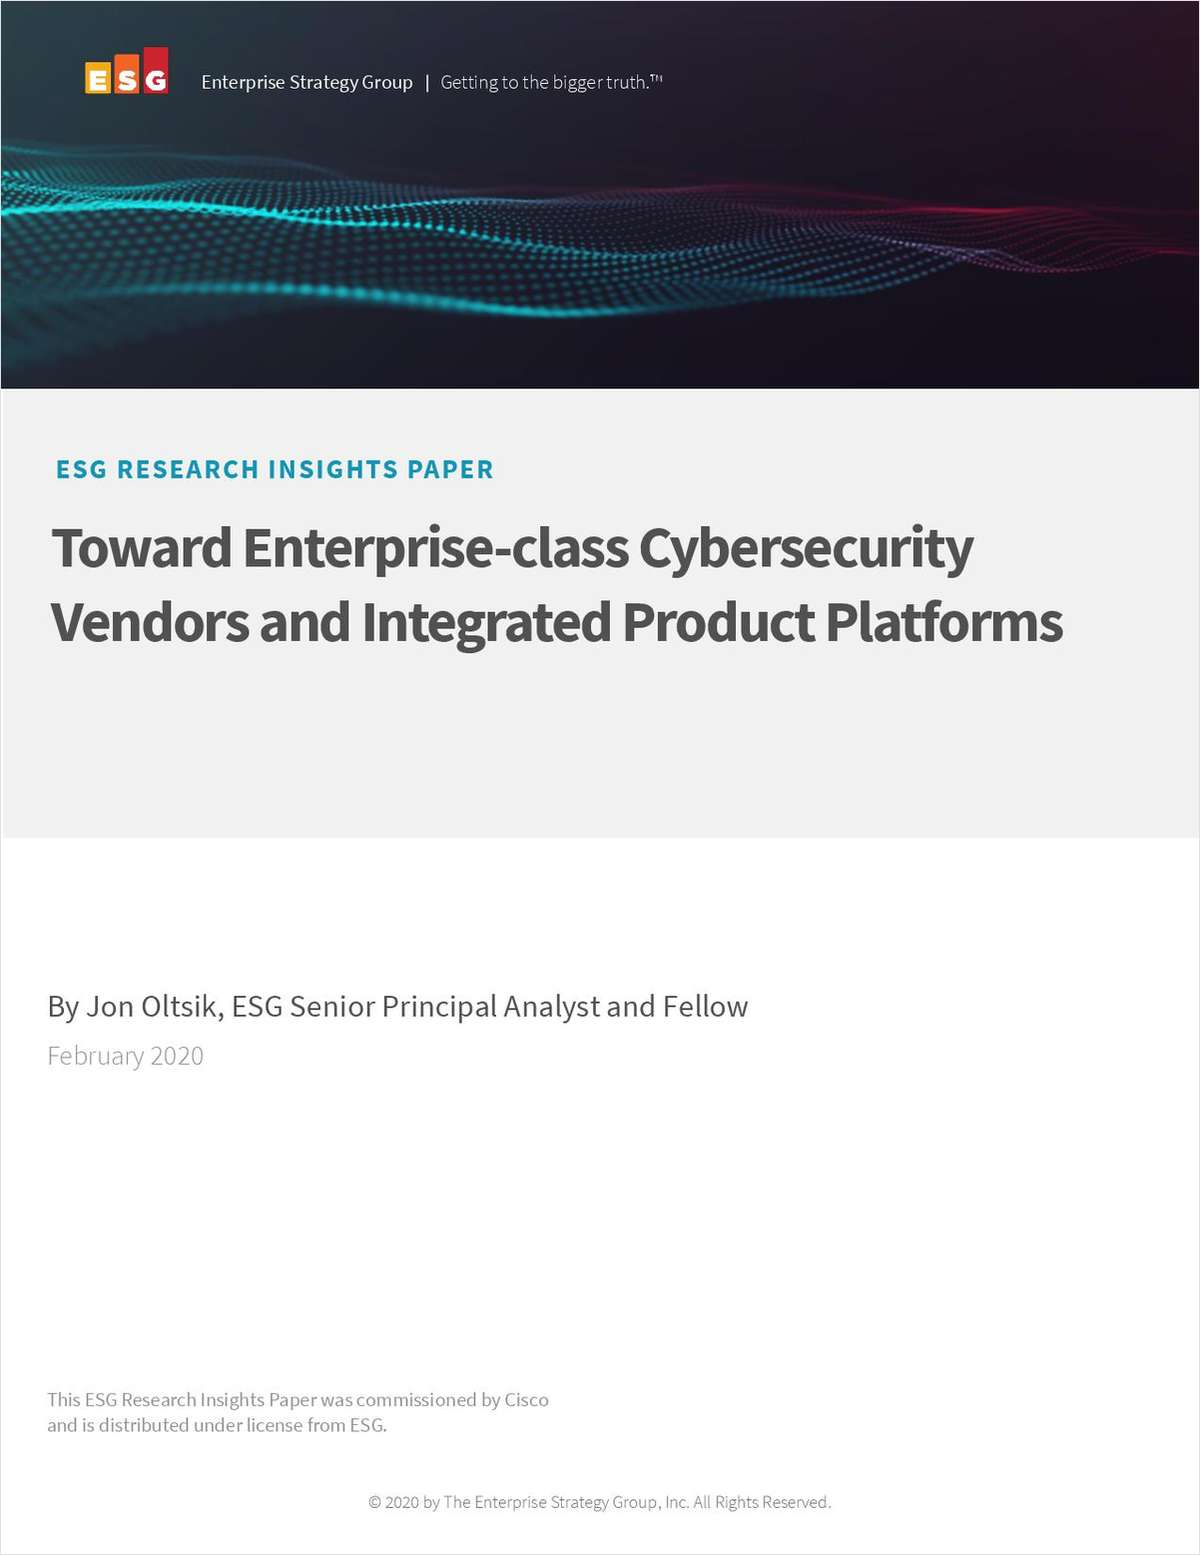 Toward Enterprise-class Cybersecurity Vendors and Integrated Product Platforms